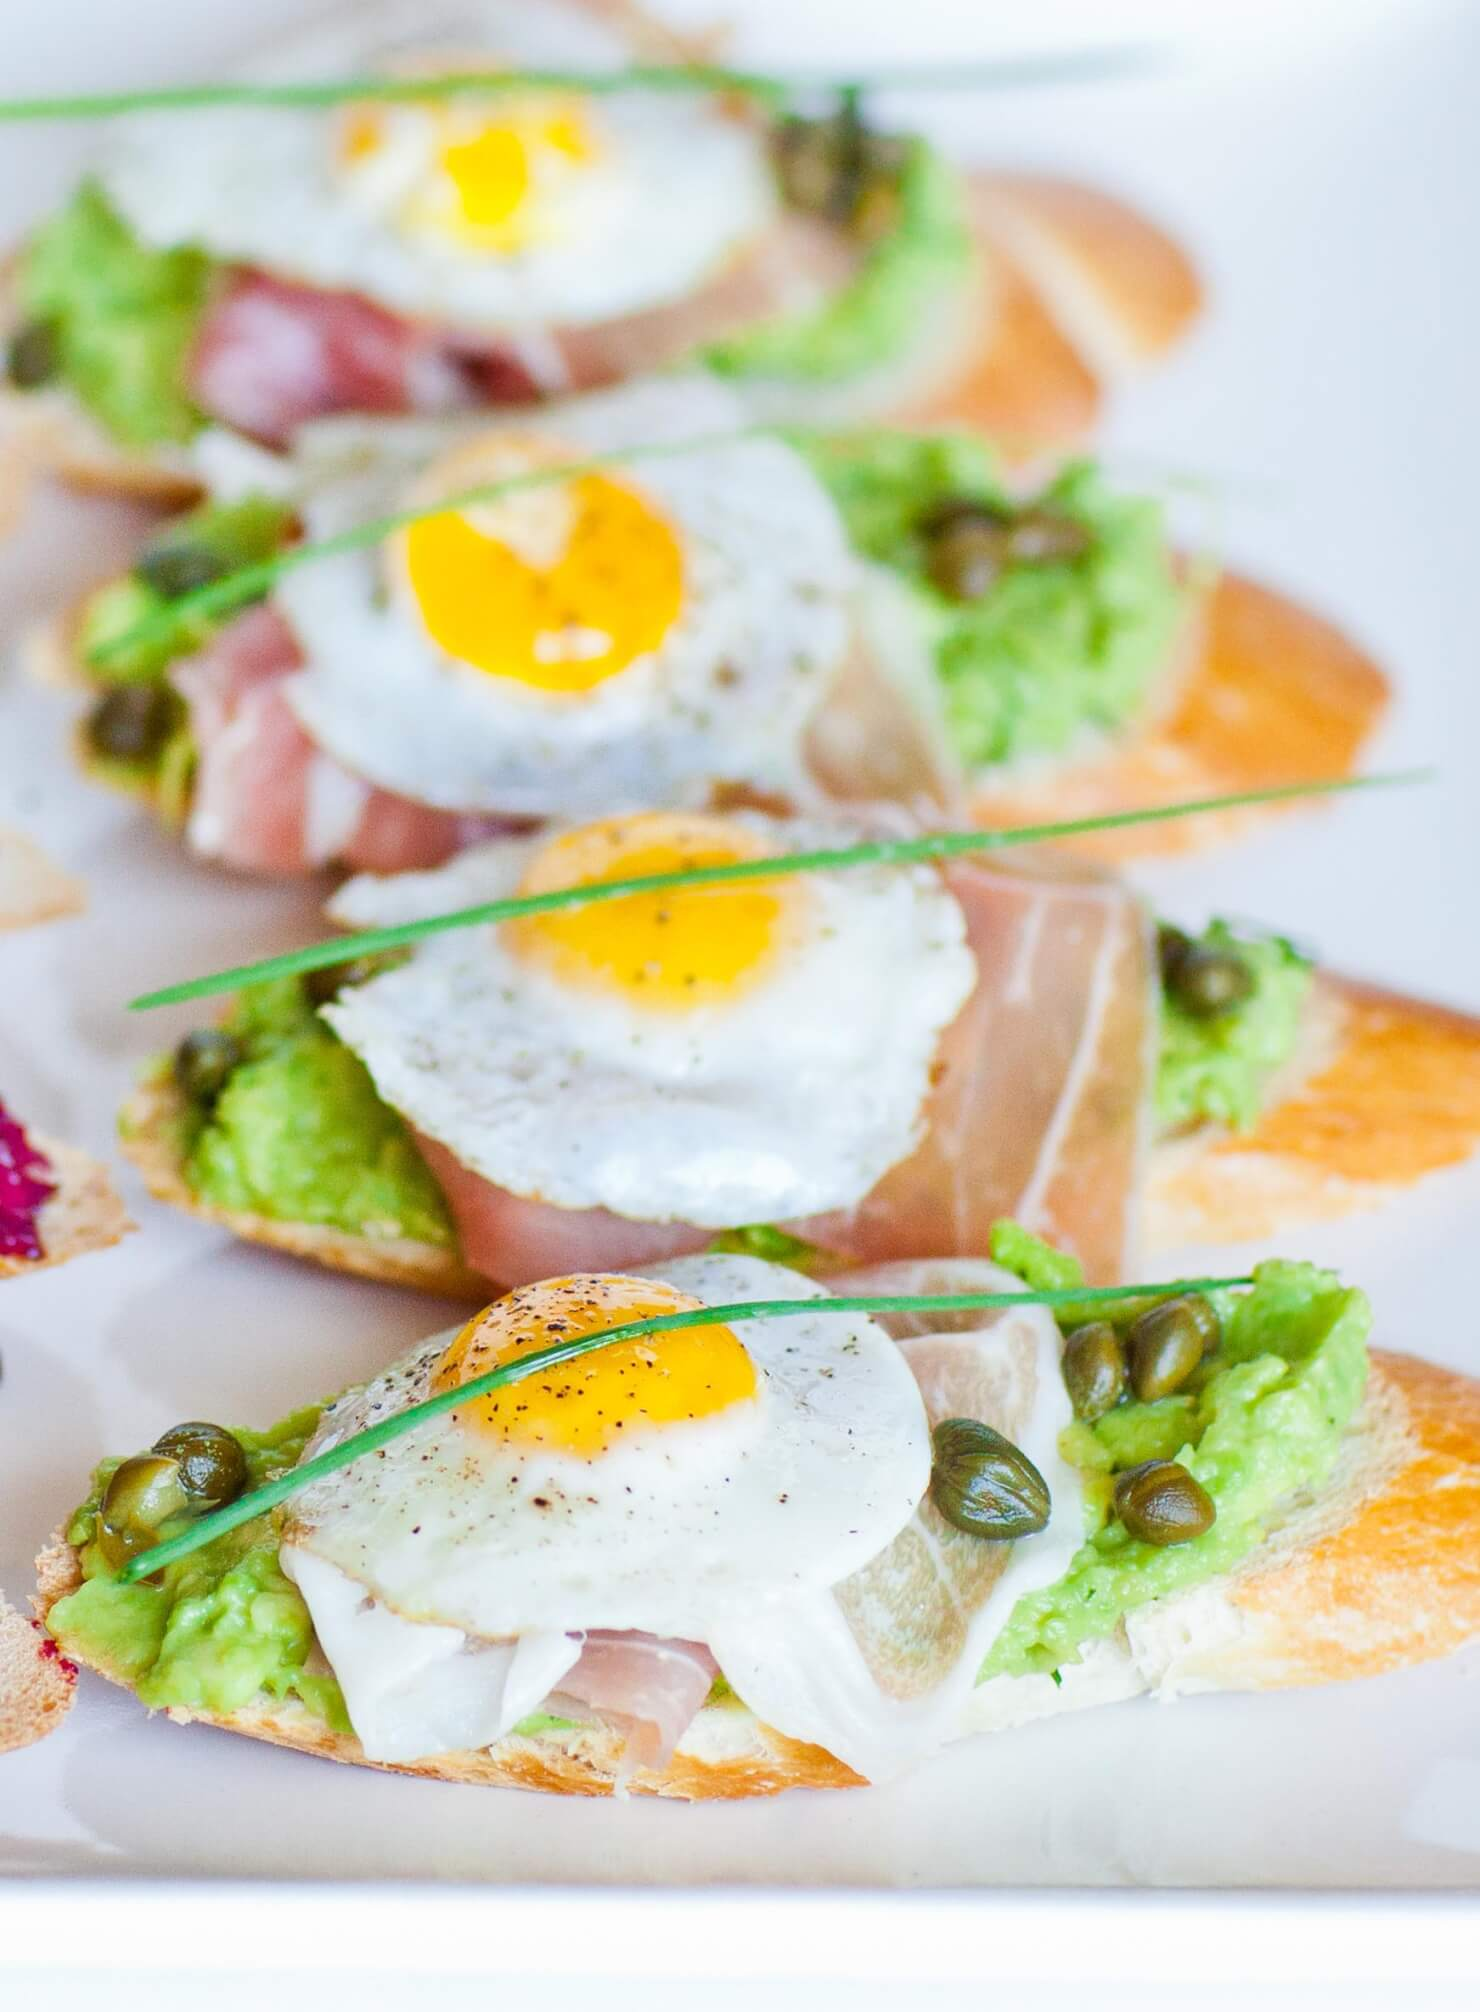 Quail Egg And Prosciutto On Avocado Toast Tatyanas Everyday Food